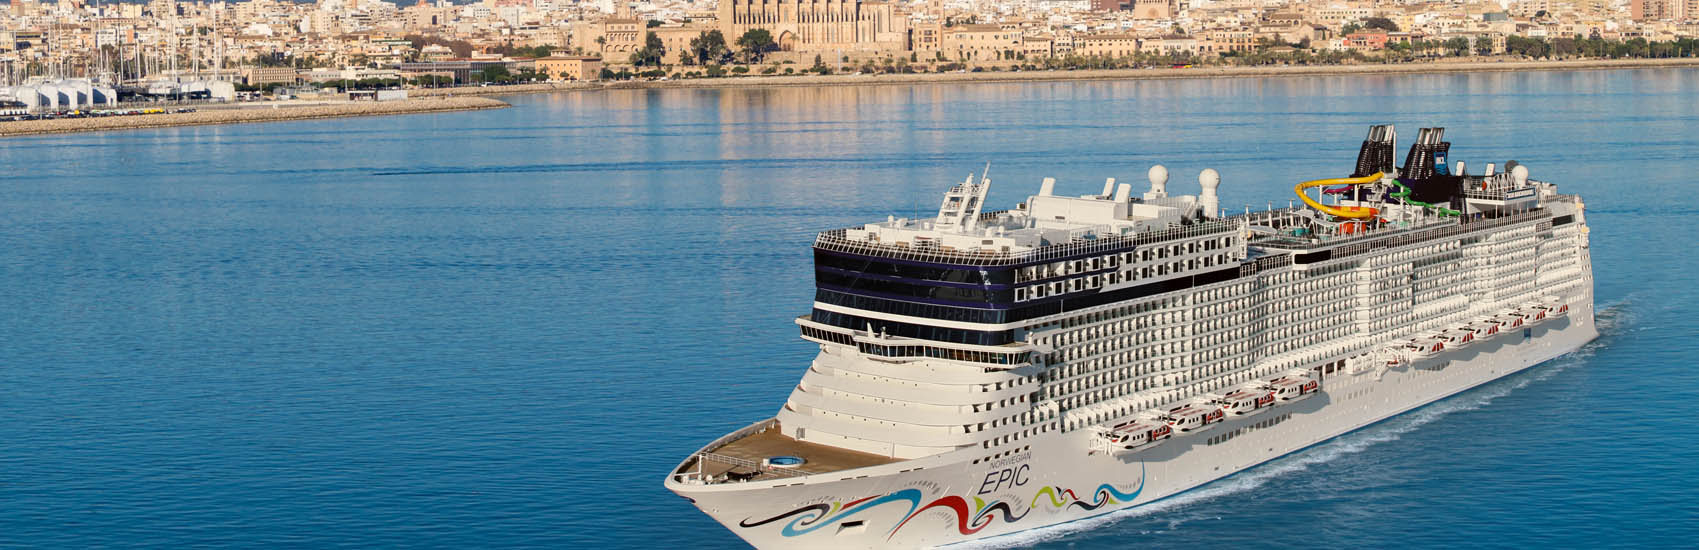 Special Offer with Norwegian Cruise Line 4